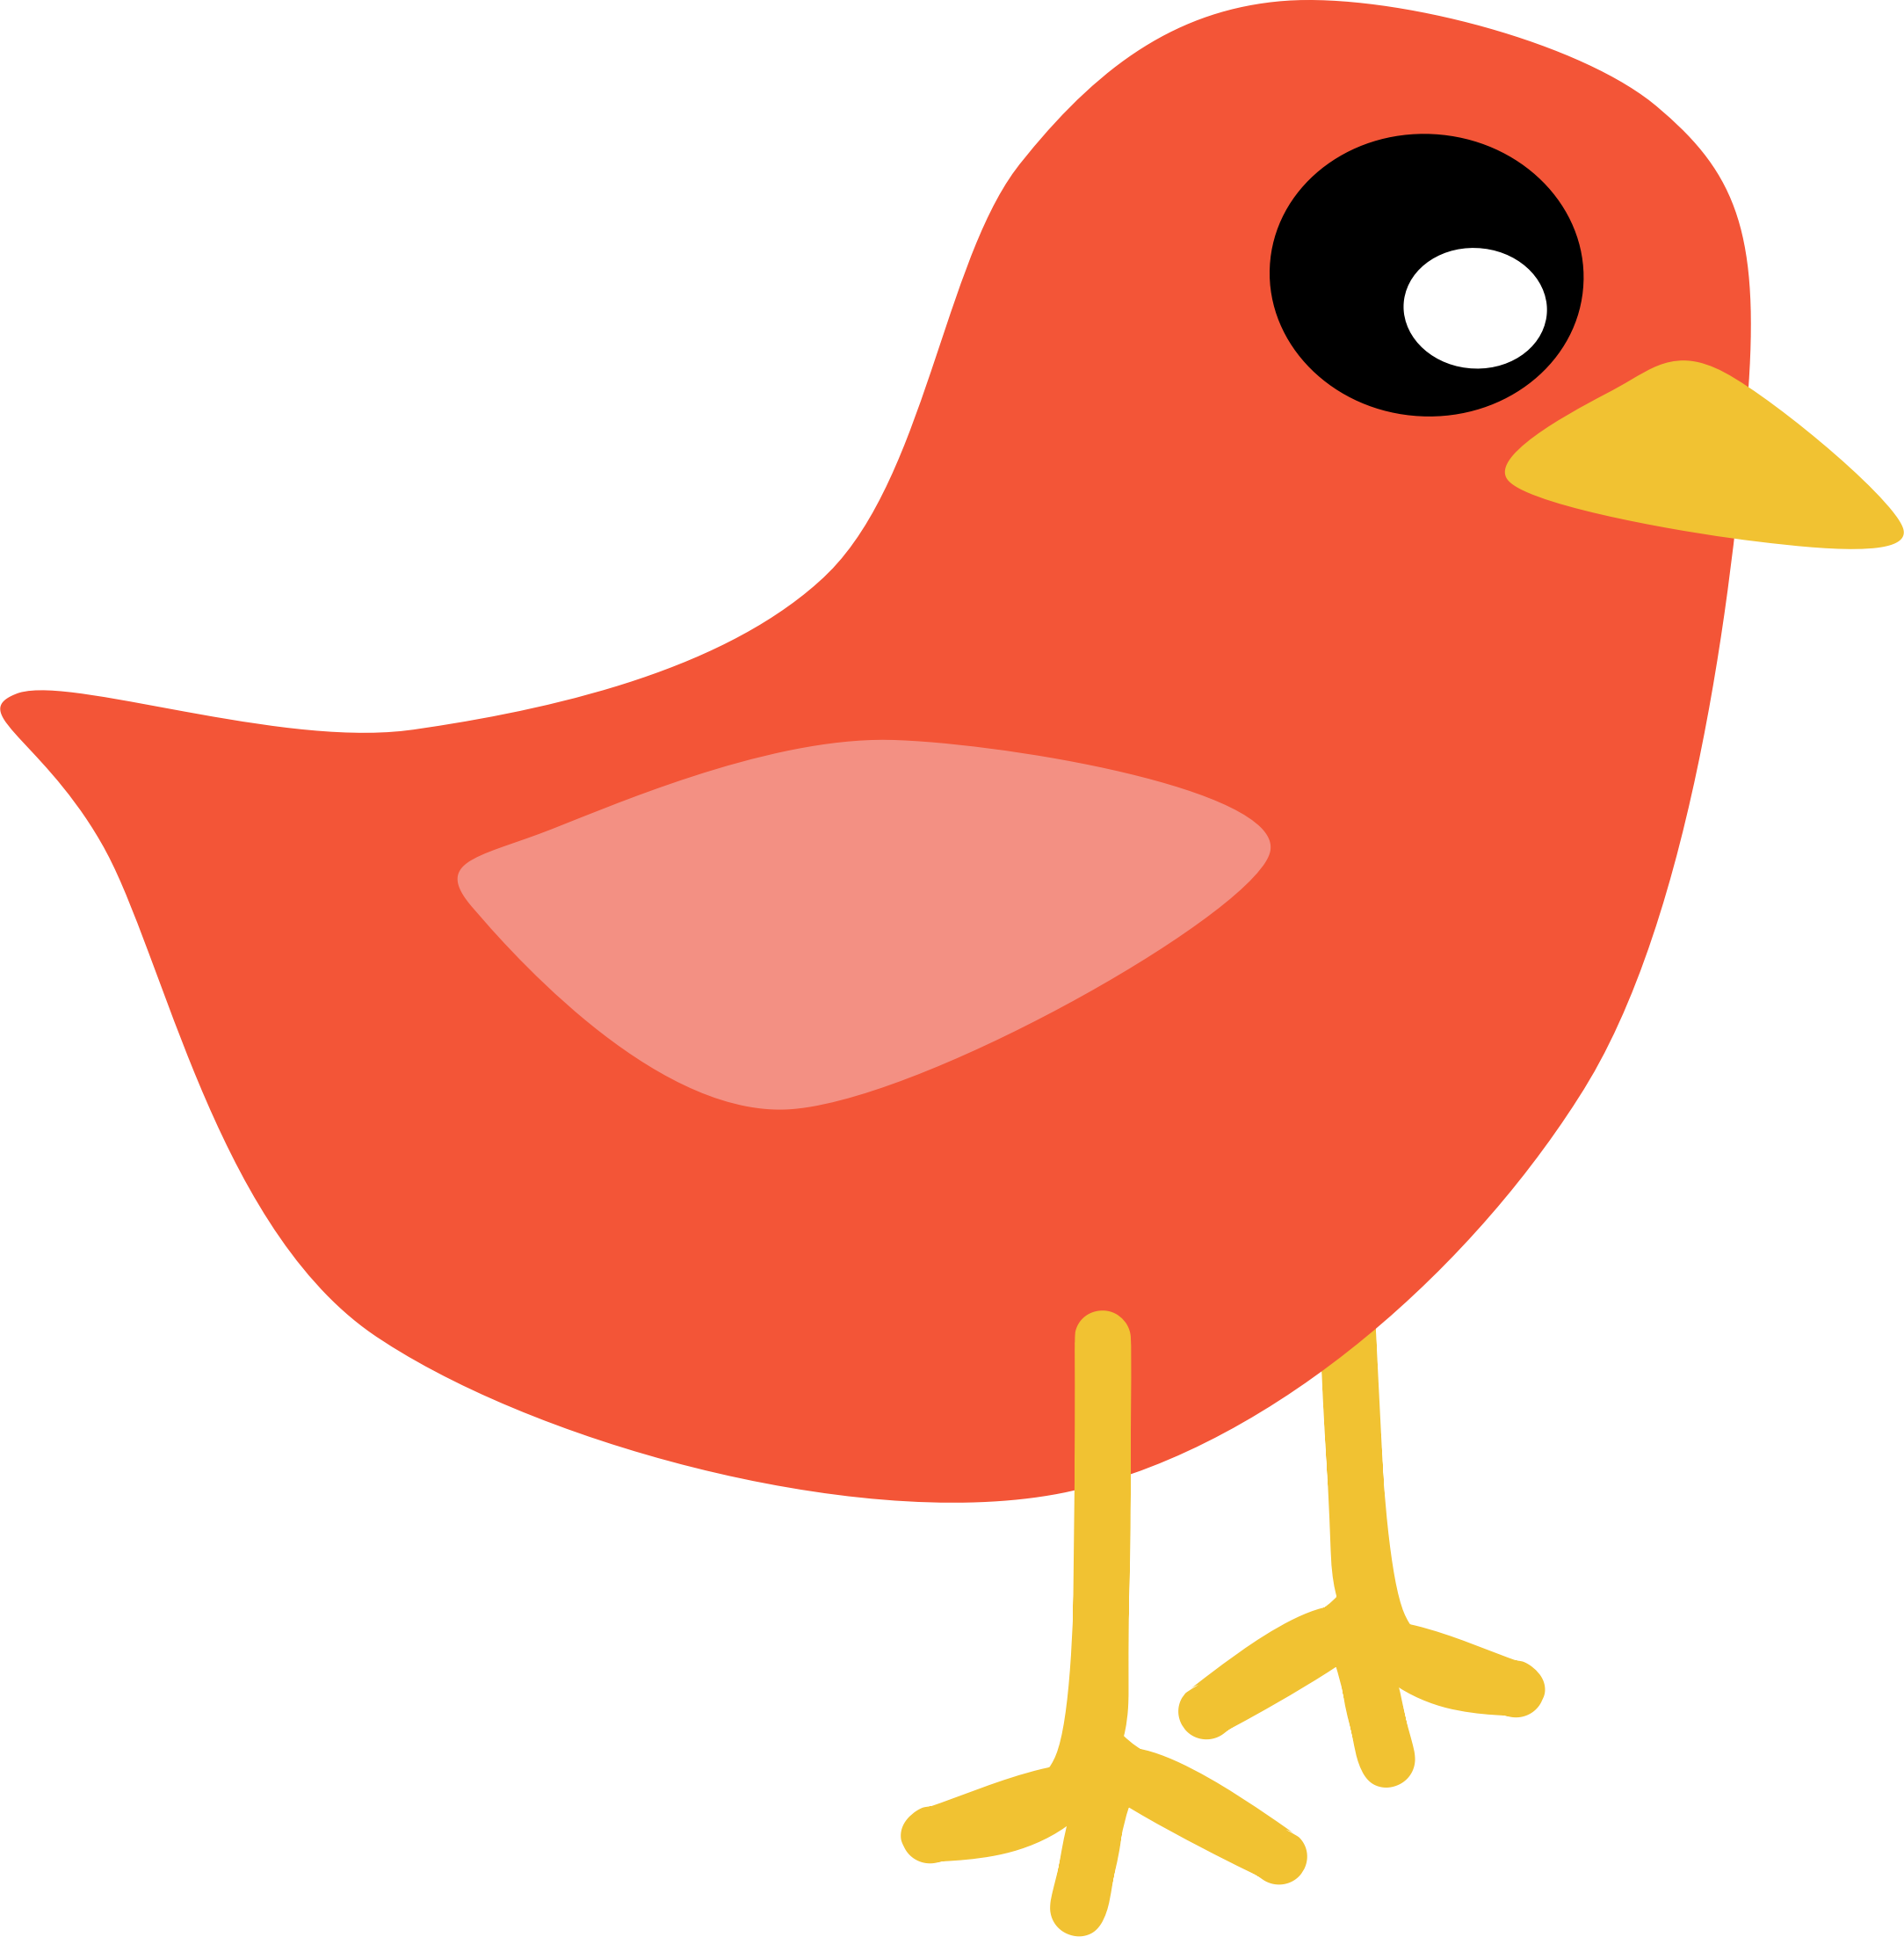 clipart red bird rh openclipart org red cardinal bird clipart red bird clip art free